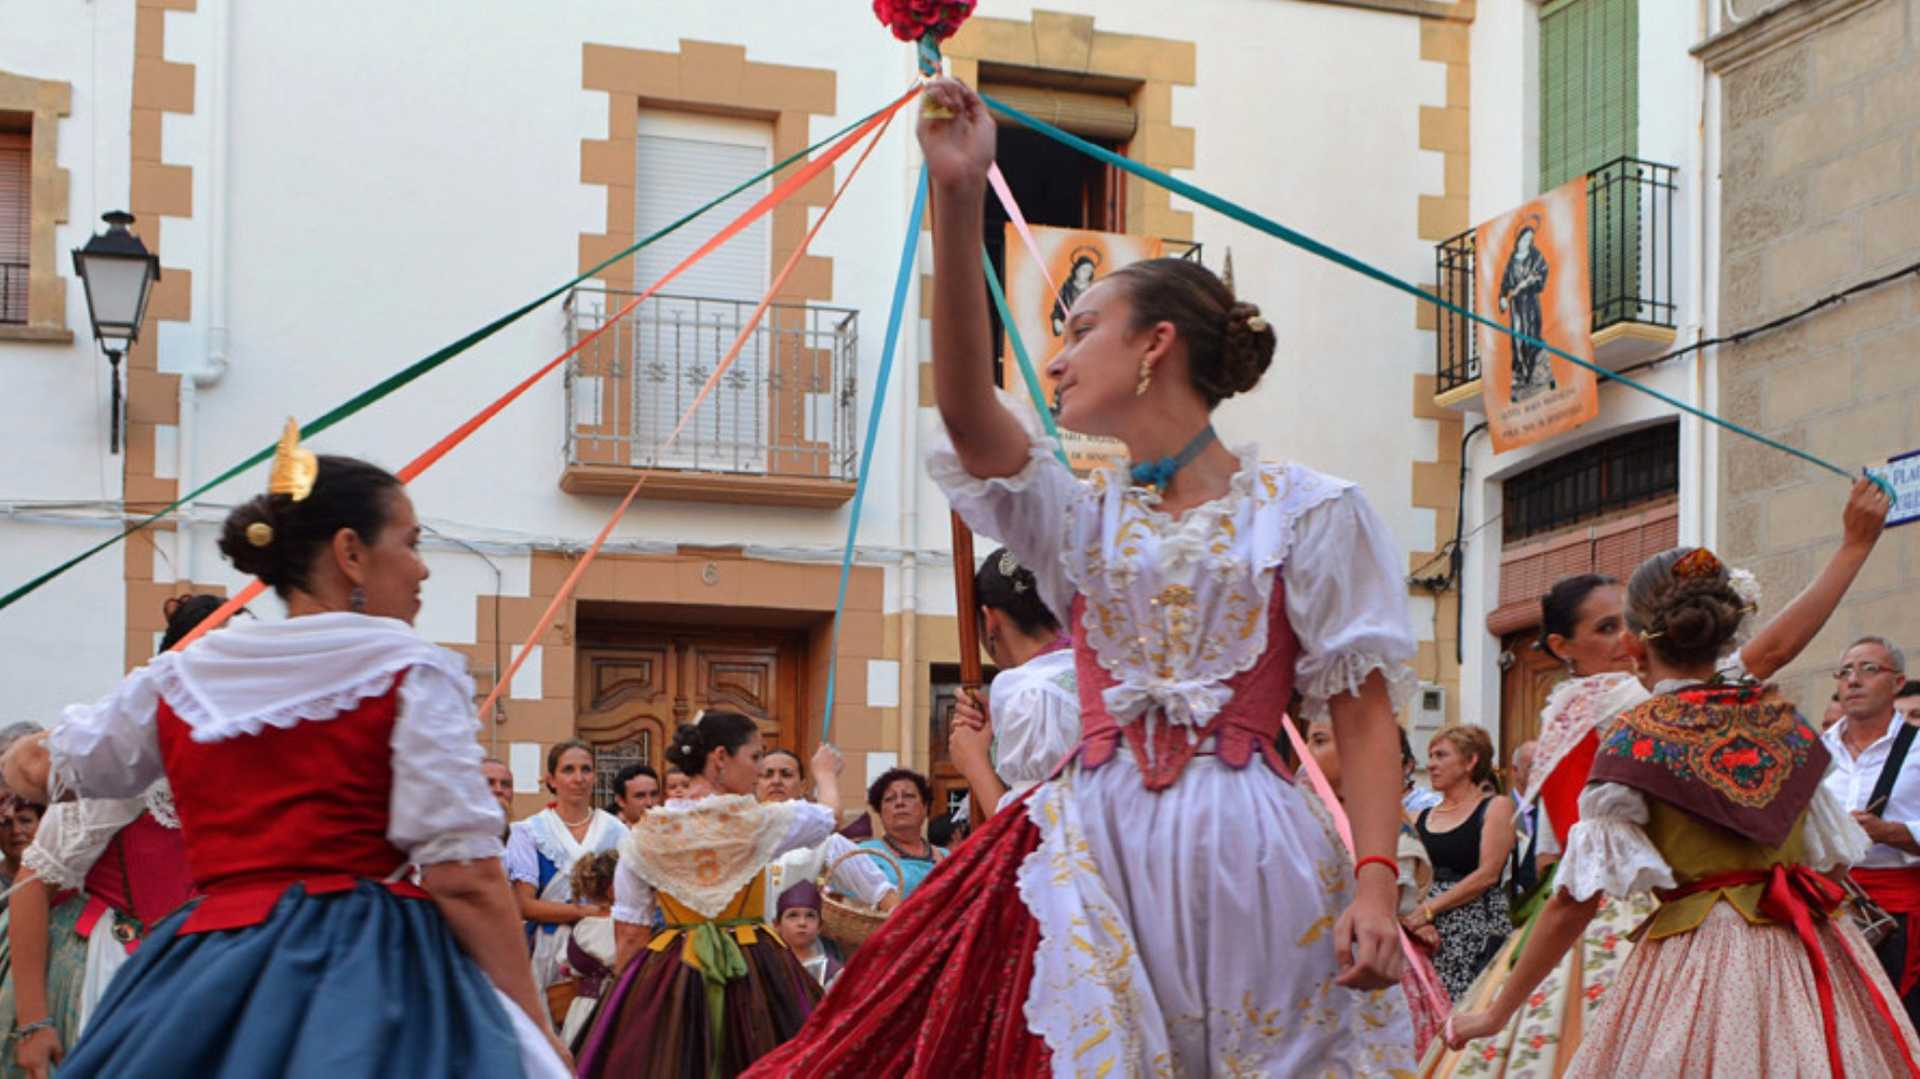 FESTIVITIES IN HONOUR OF SANTA MARÍA MAGDALENA